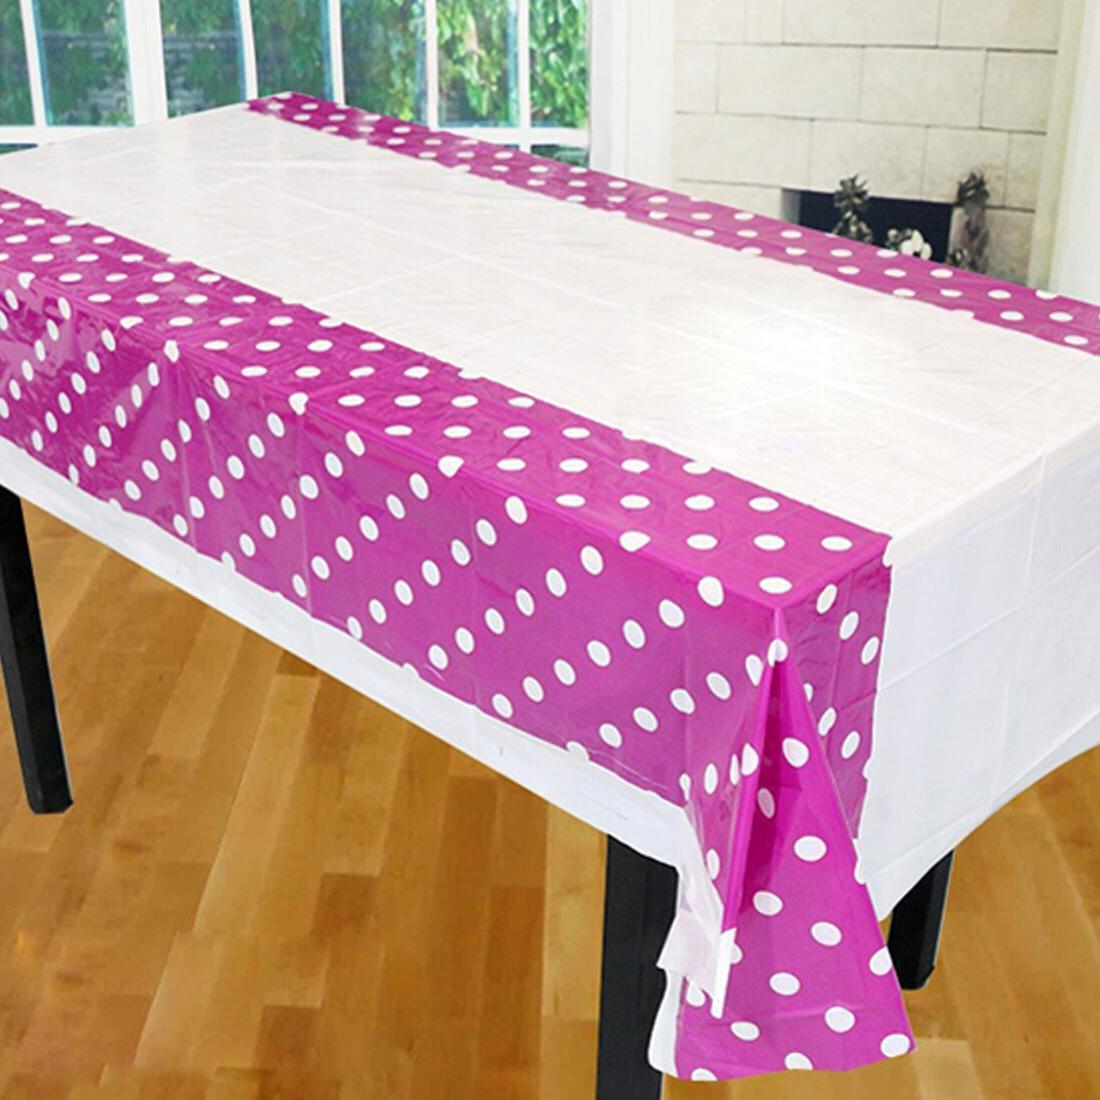 108 180CM <font><b>Cloth</b></font> <font><b>Plastic</b></font> Decoration Birthday Party Tablecloth